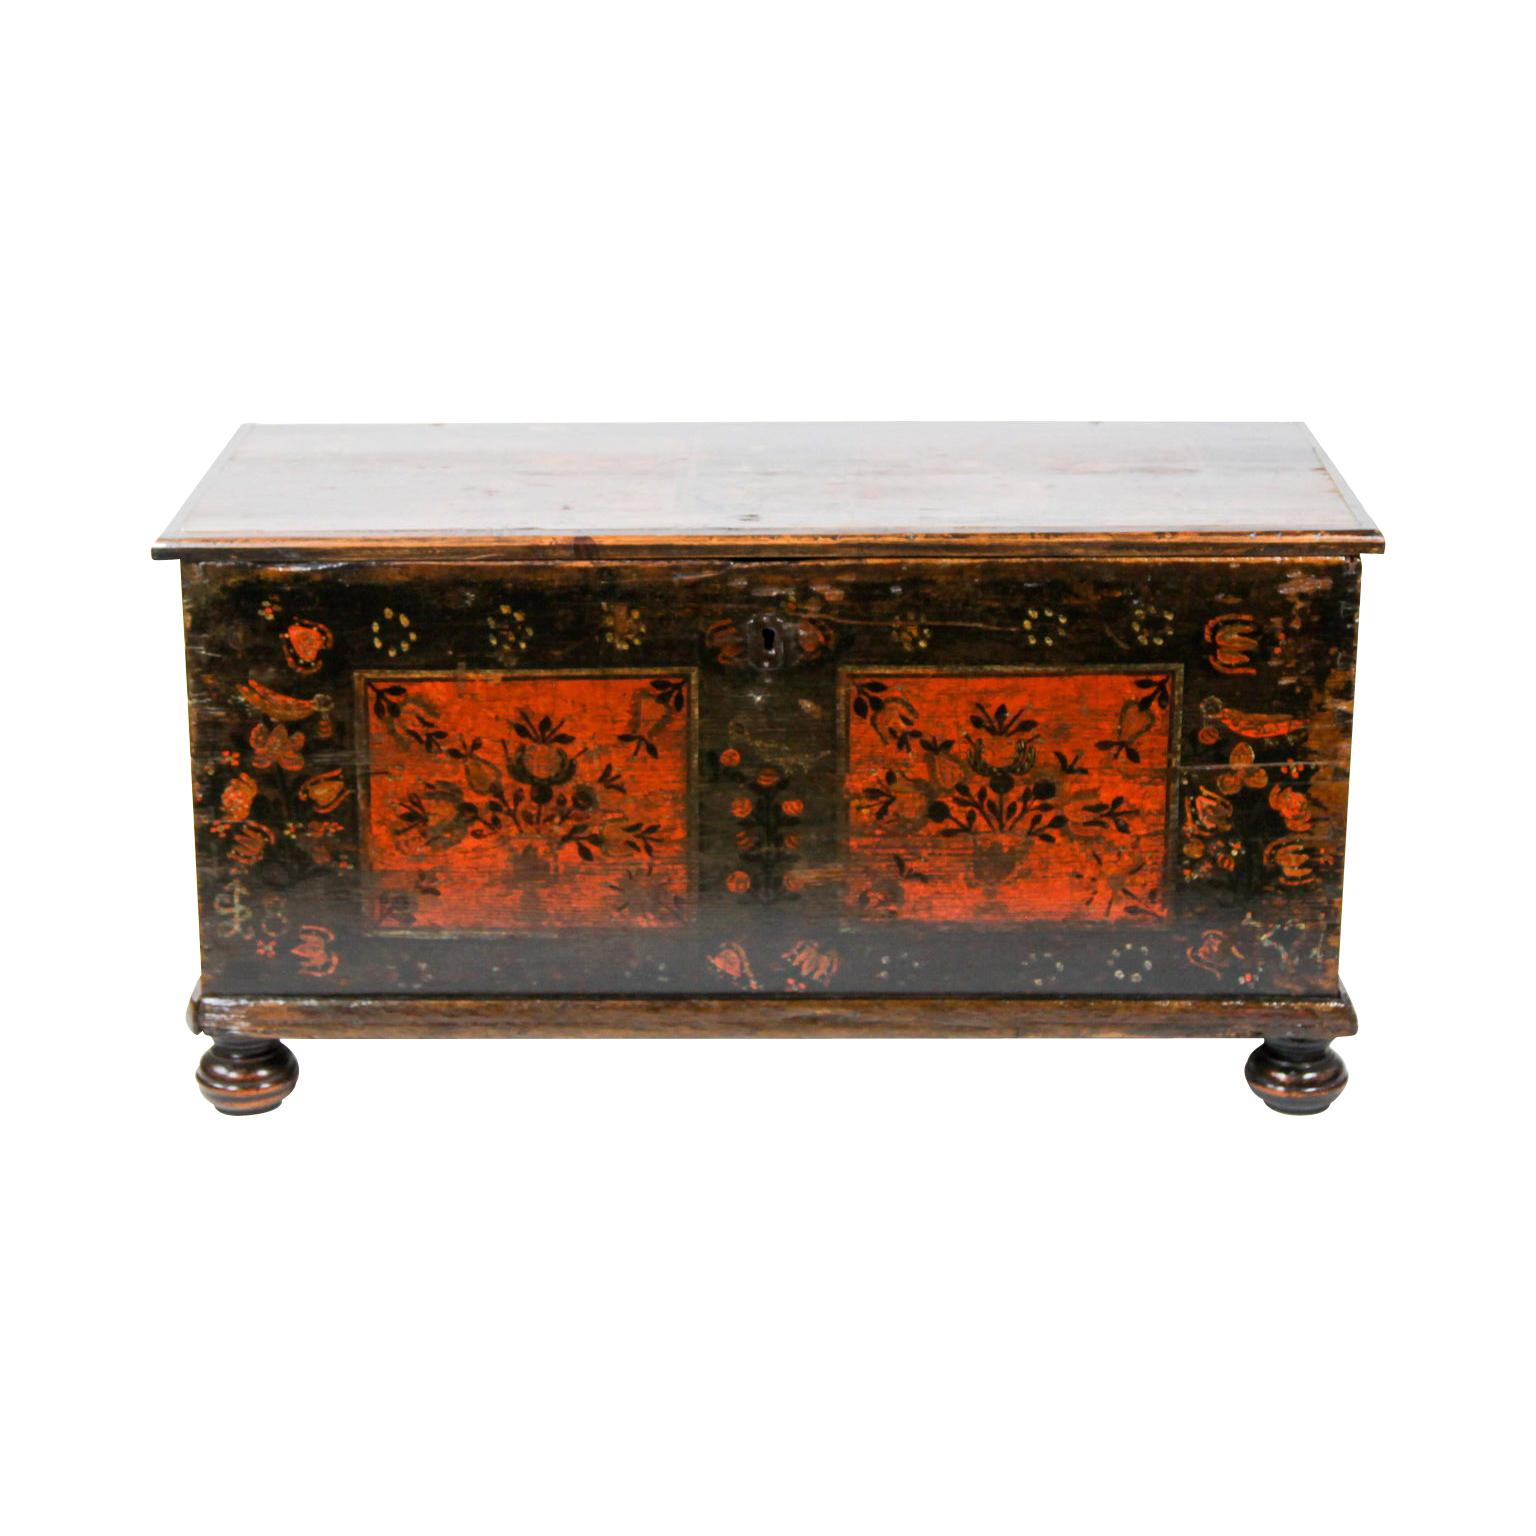 19th Century Painted Blanket Chest